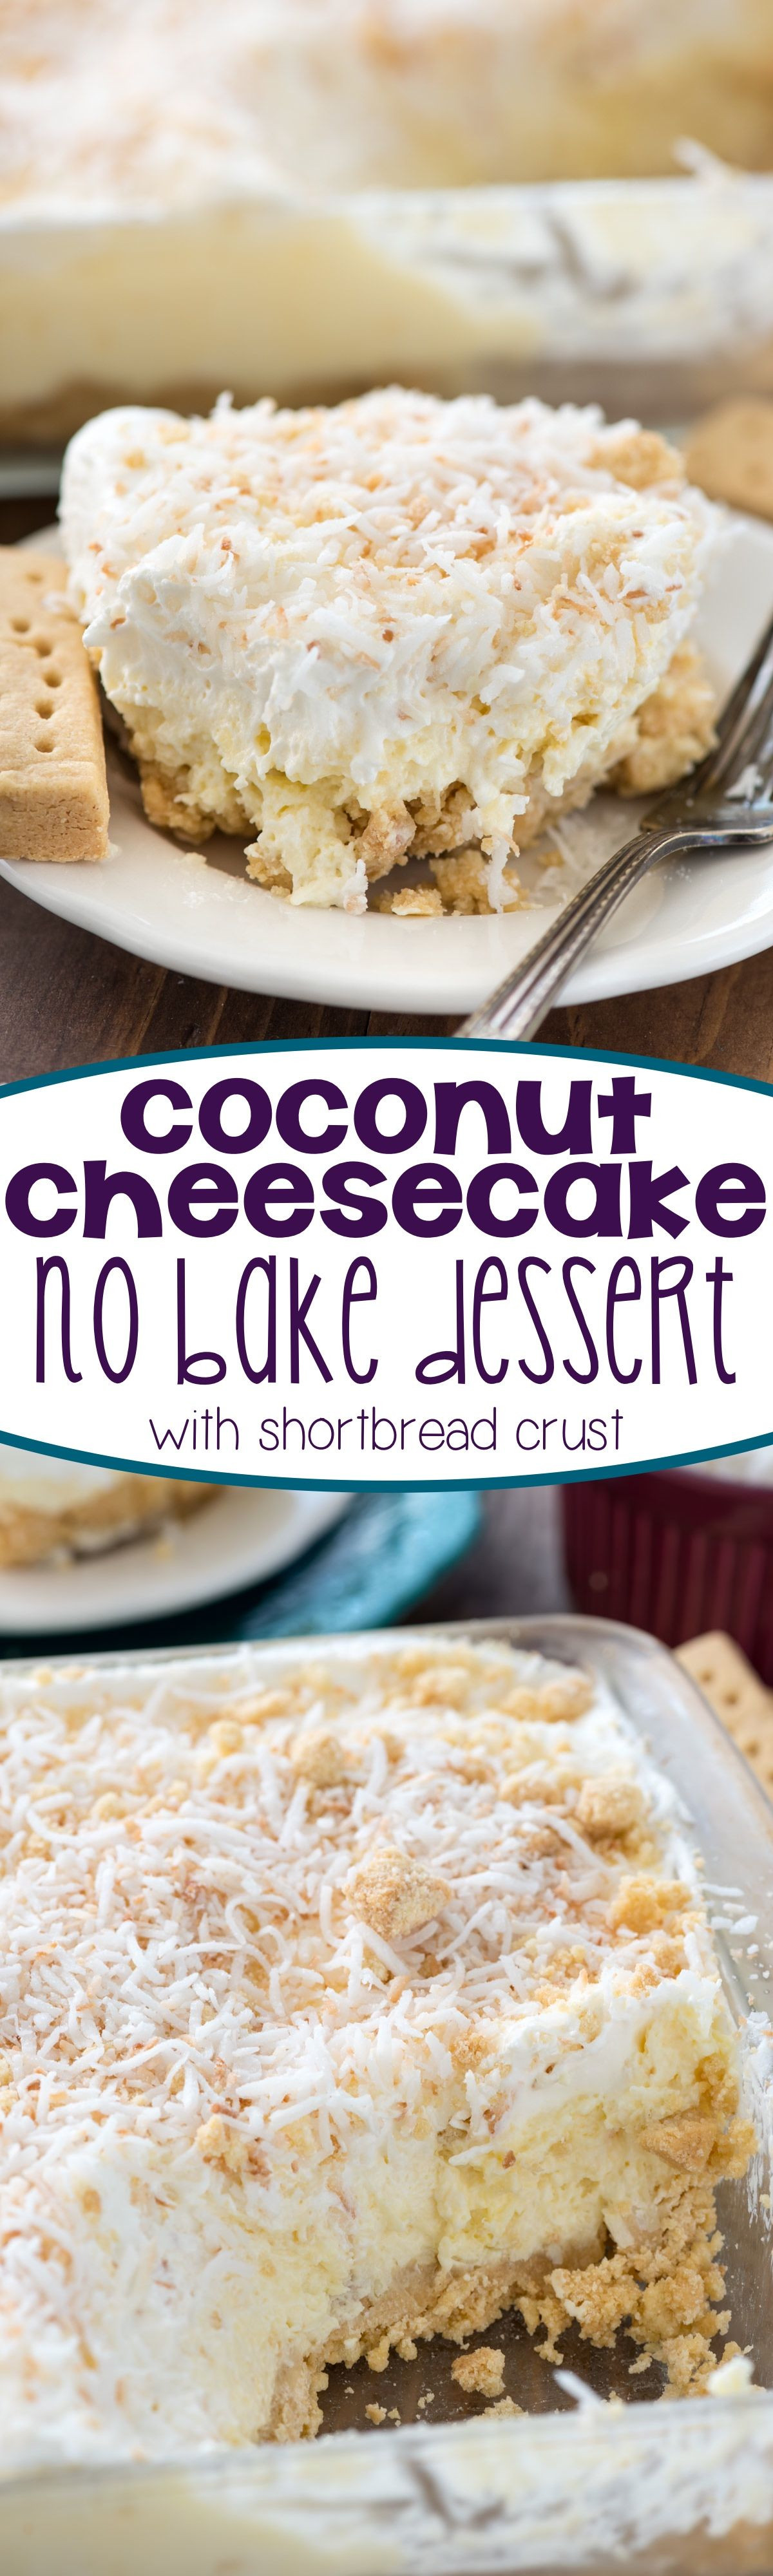 Easy Coconut Dessert Recipes  Easy Coconut Cheesecake No Bake Dessert Recipe this